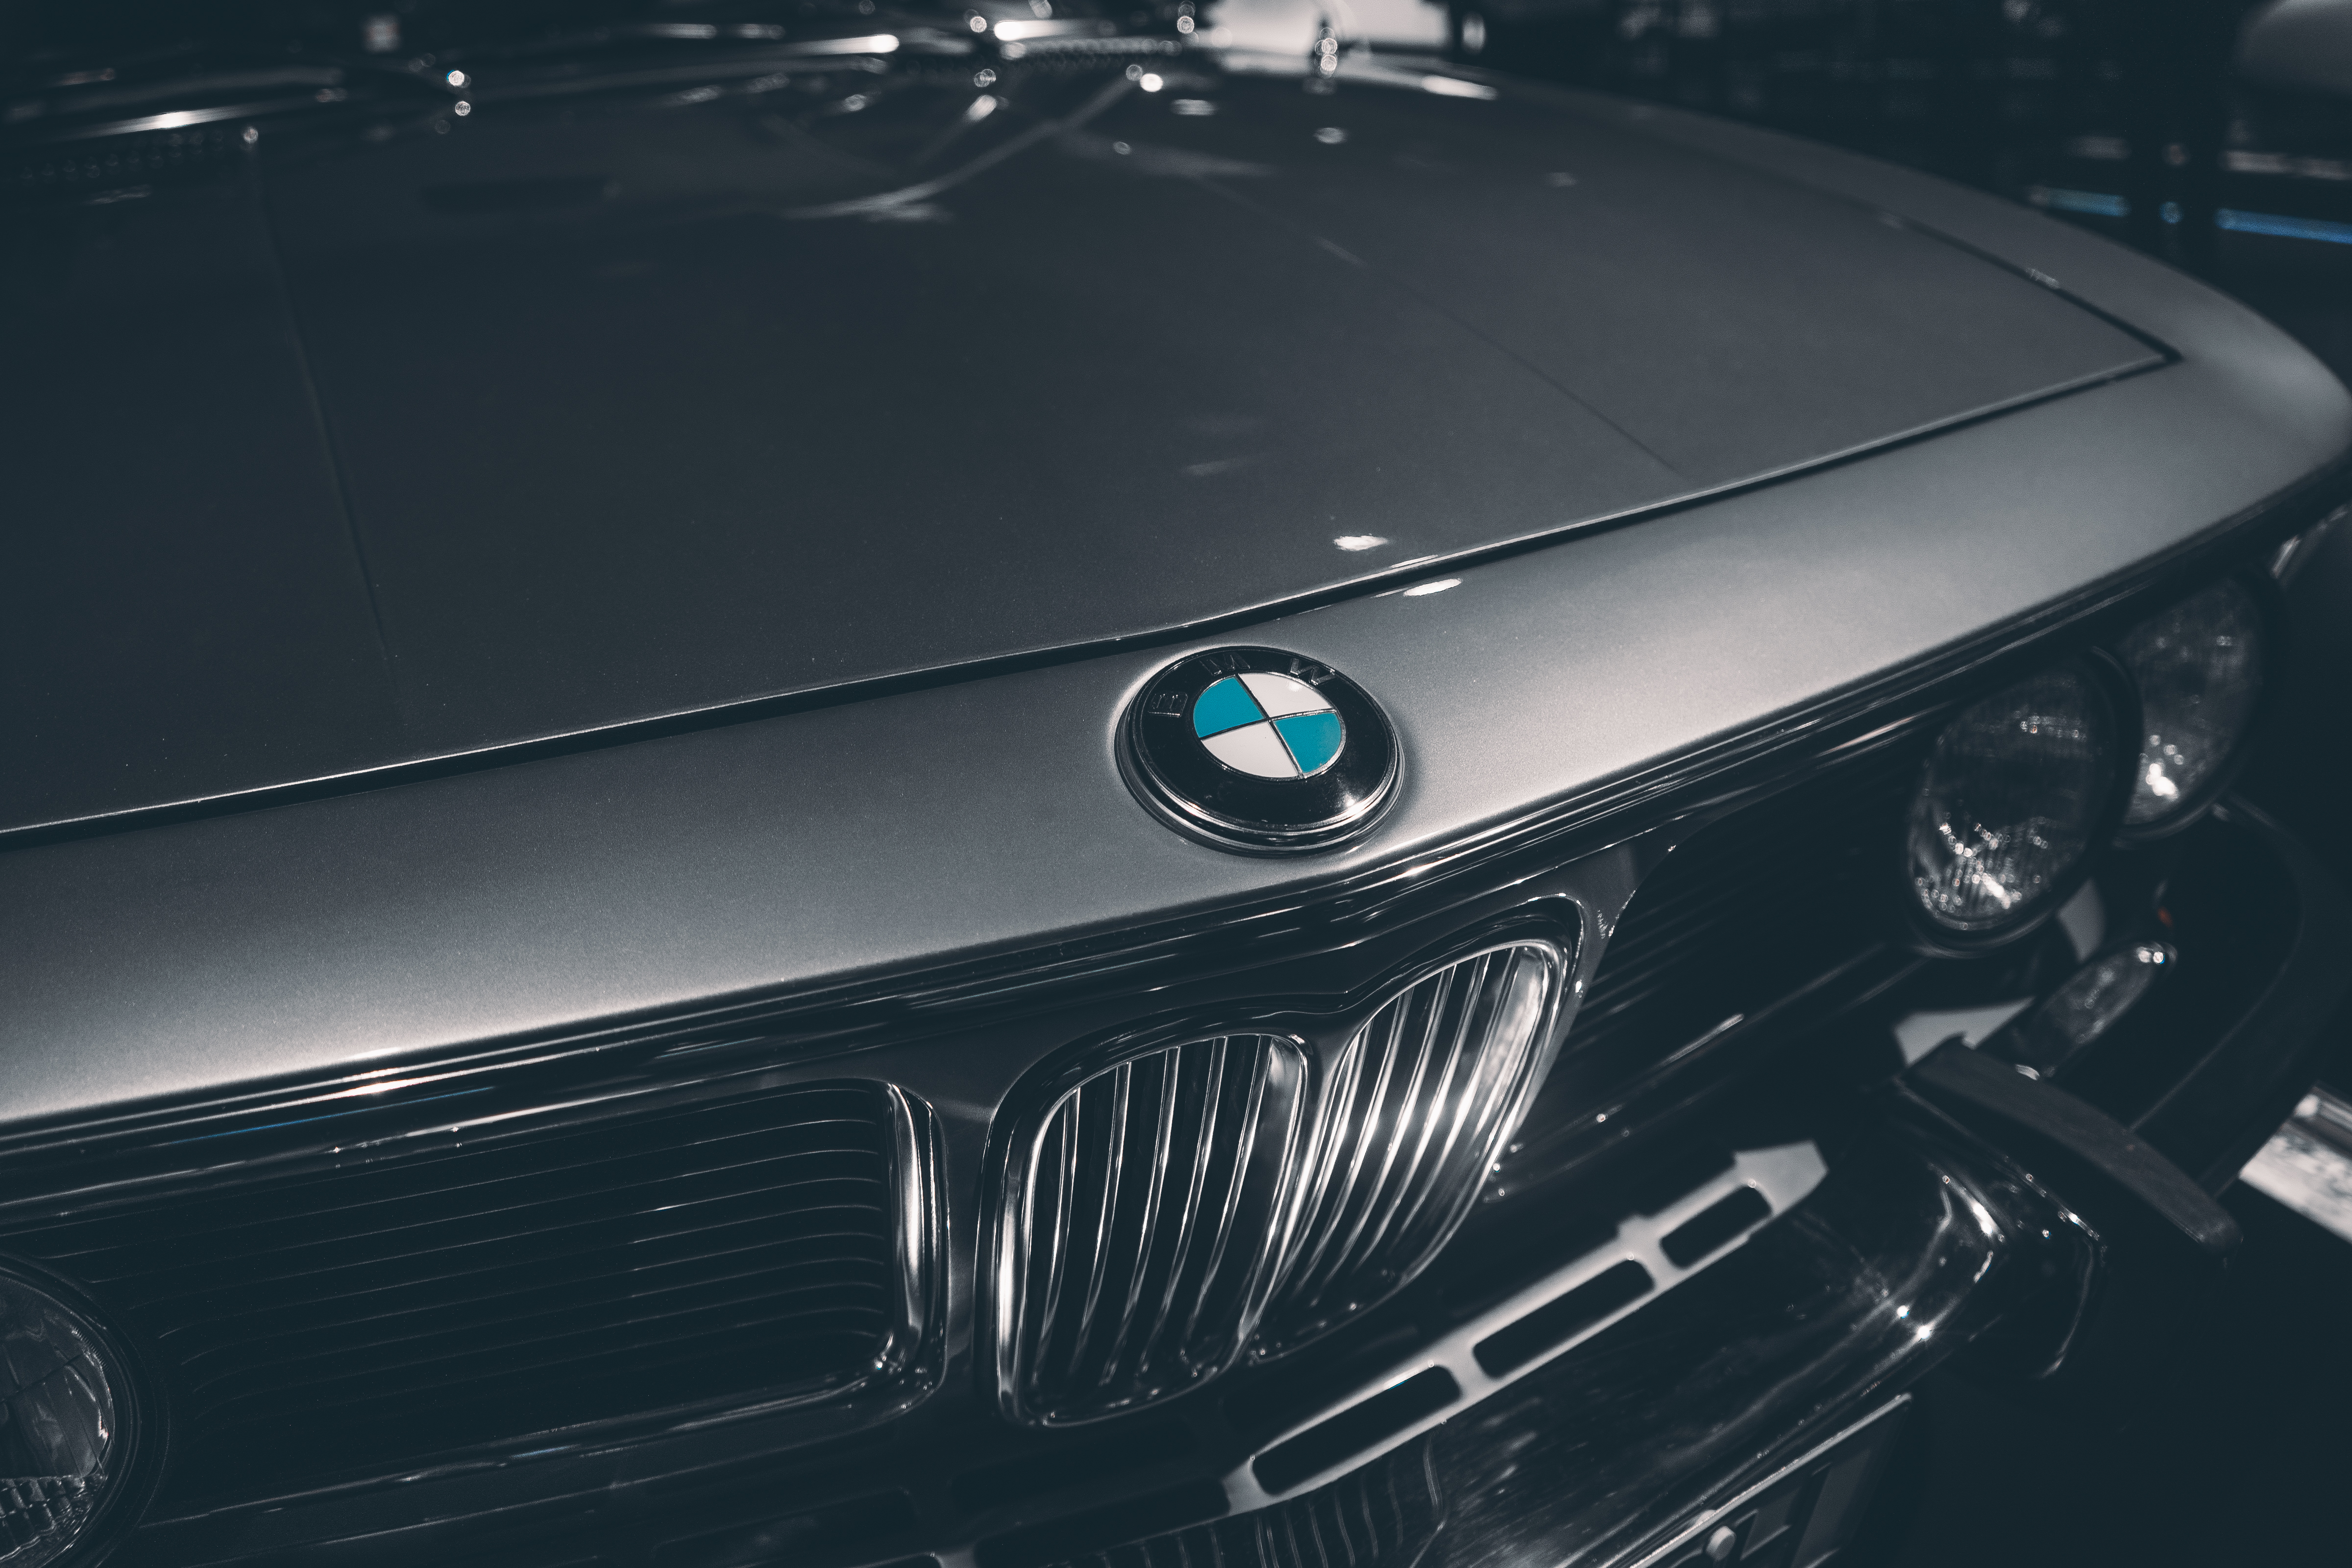 Grayscale Photography of BMW Car